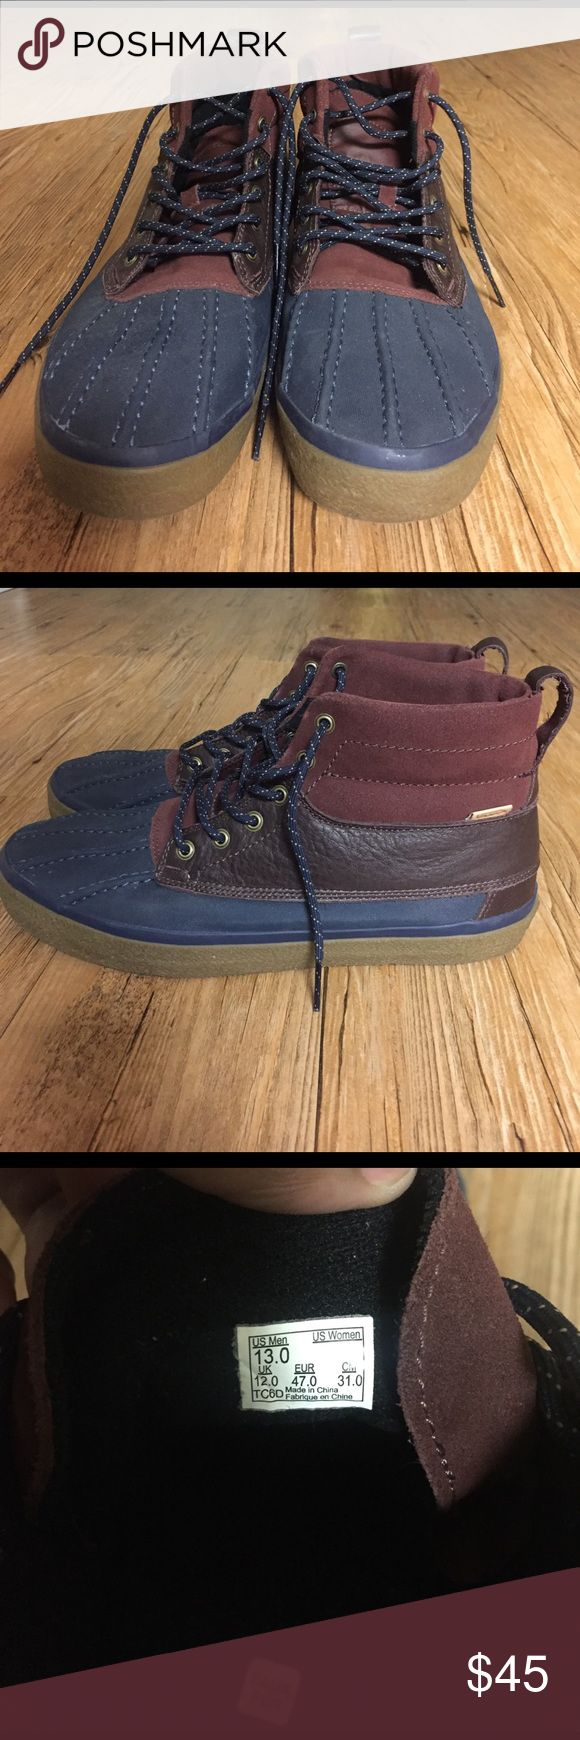 Vans Sk8-Hi MTE Sneakerboot Burgundy and navy colored, gum sole, suede and rubber, duck boot style, size 13, good condition, don't have box to ship in but will ship in a different shoe box Vans Shoes Boots